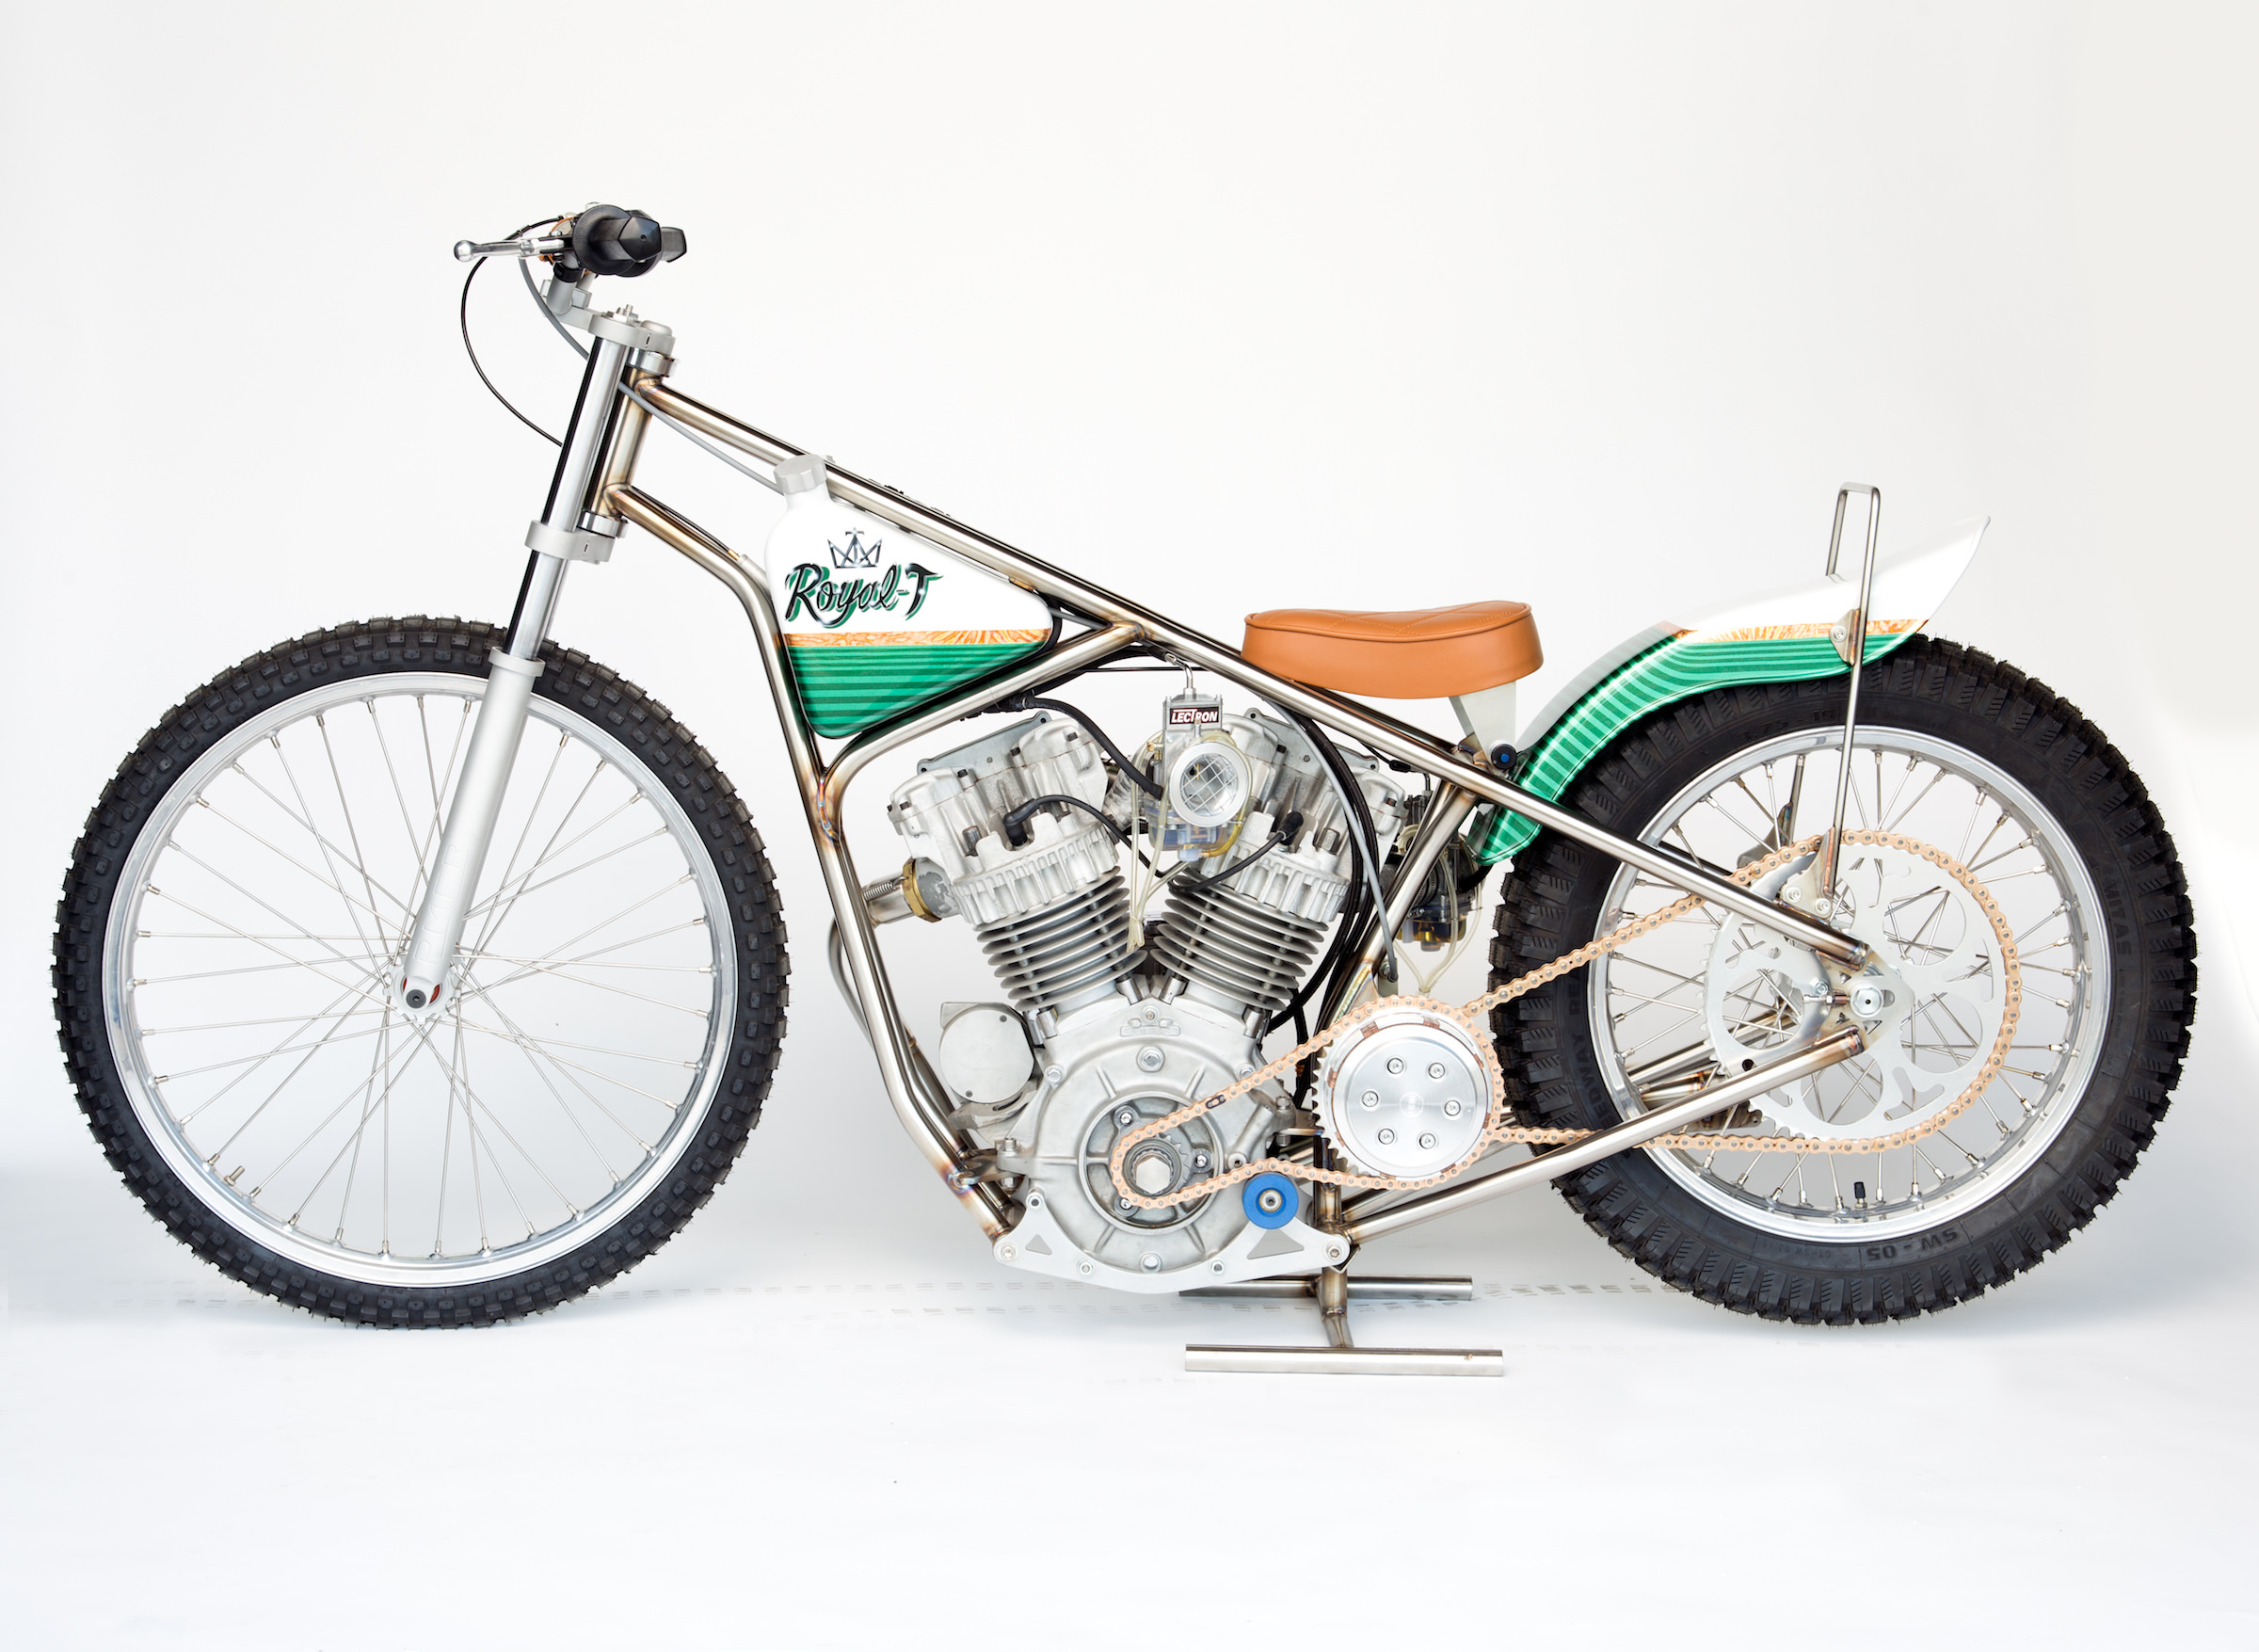 Speedway Motorcycle Racing Bikes: The Only One In The World: 1967 Meirson Sprint Motor (MSM